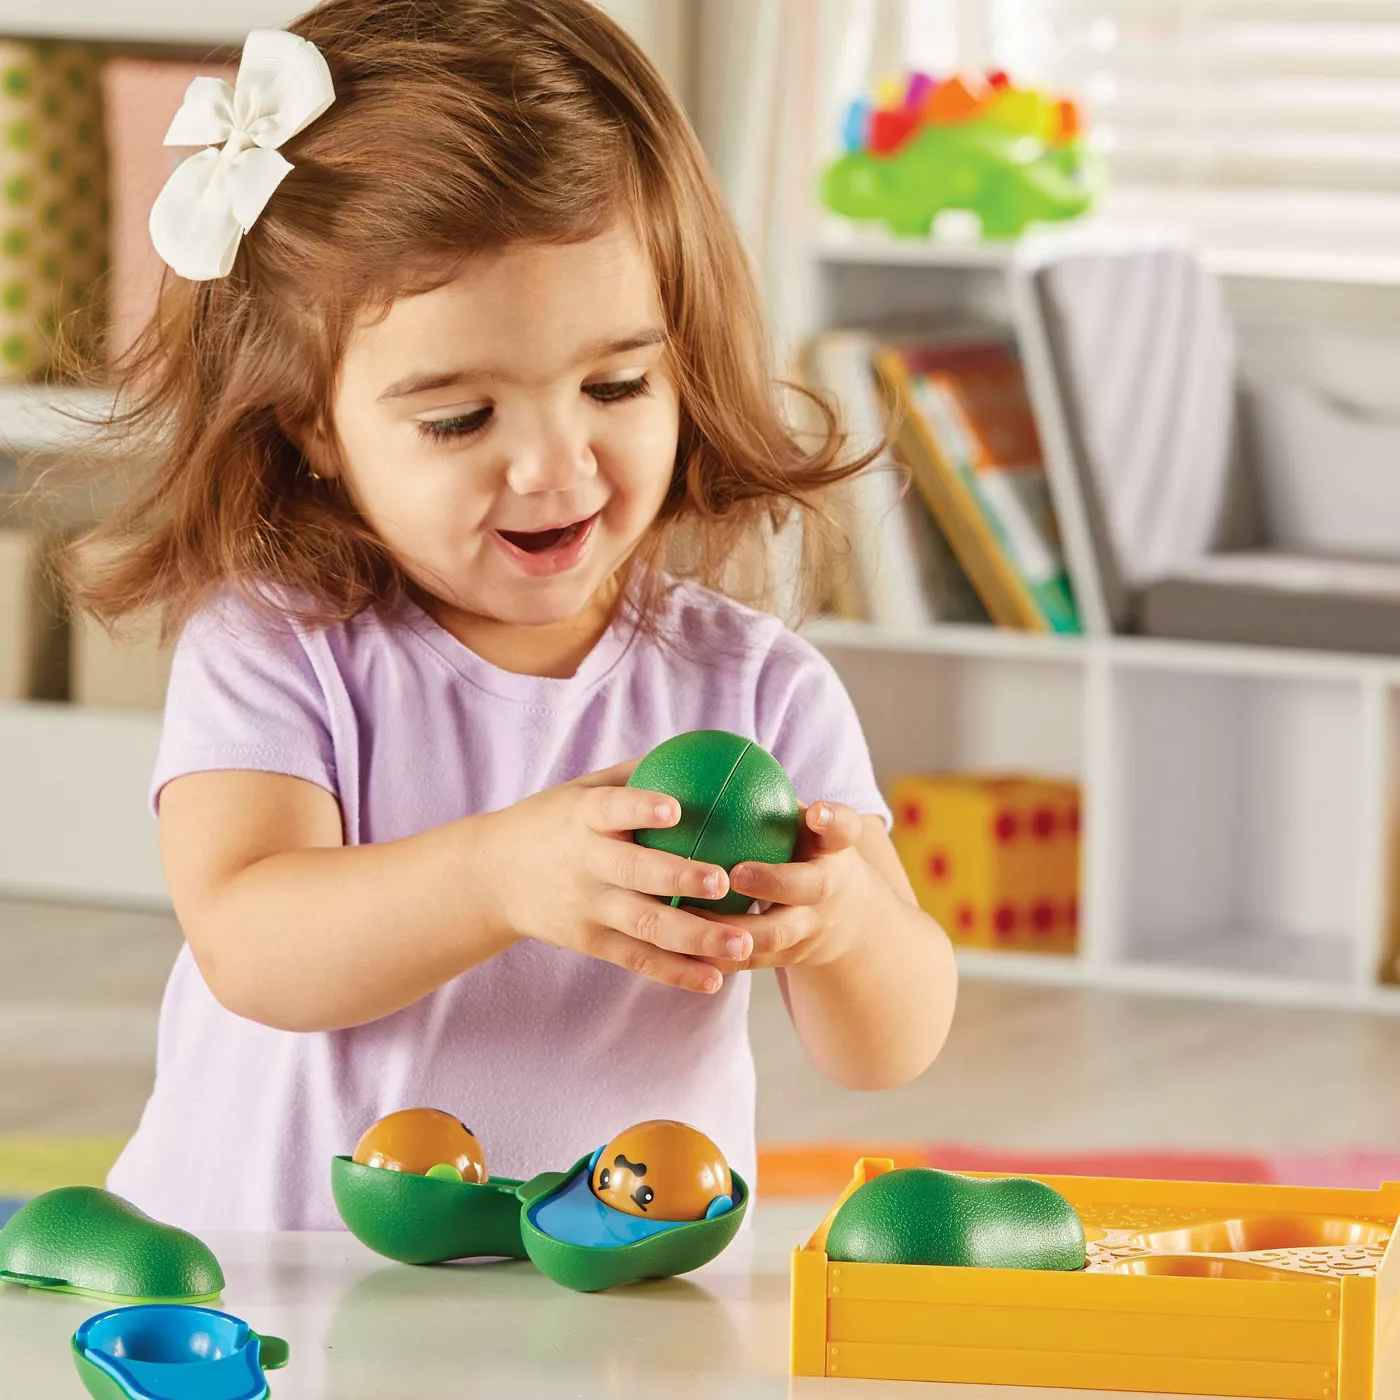 Child model playing with green plastic avocado